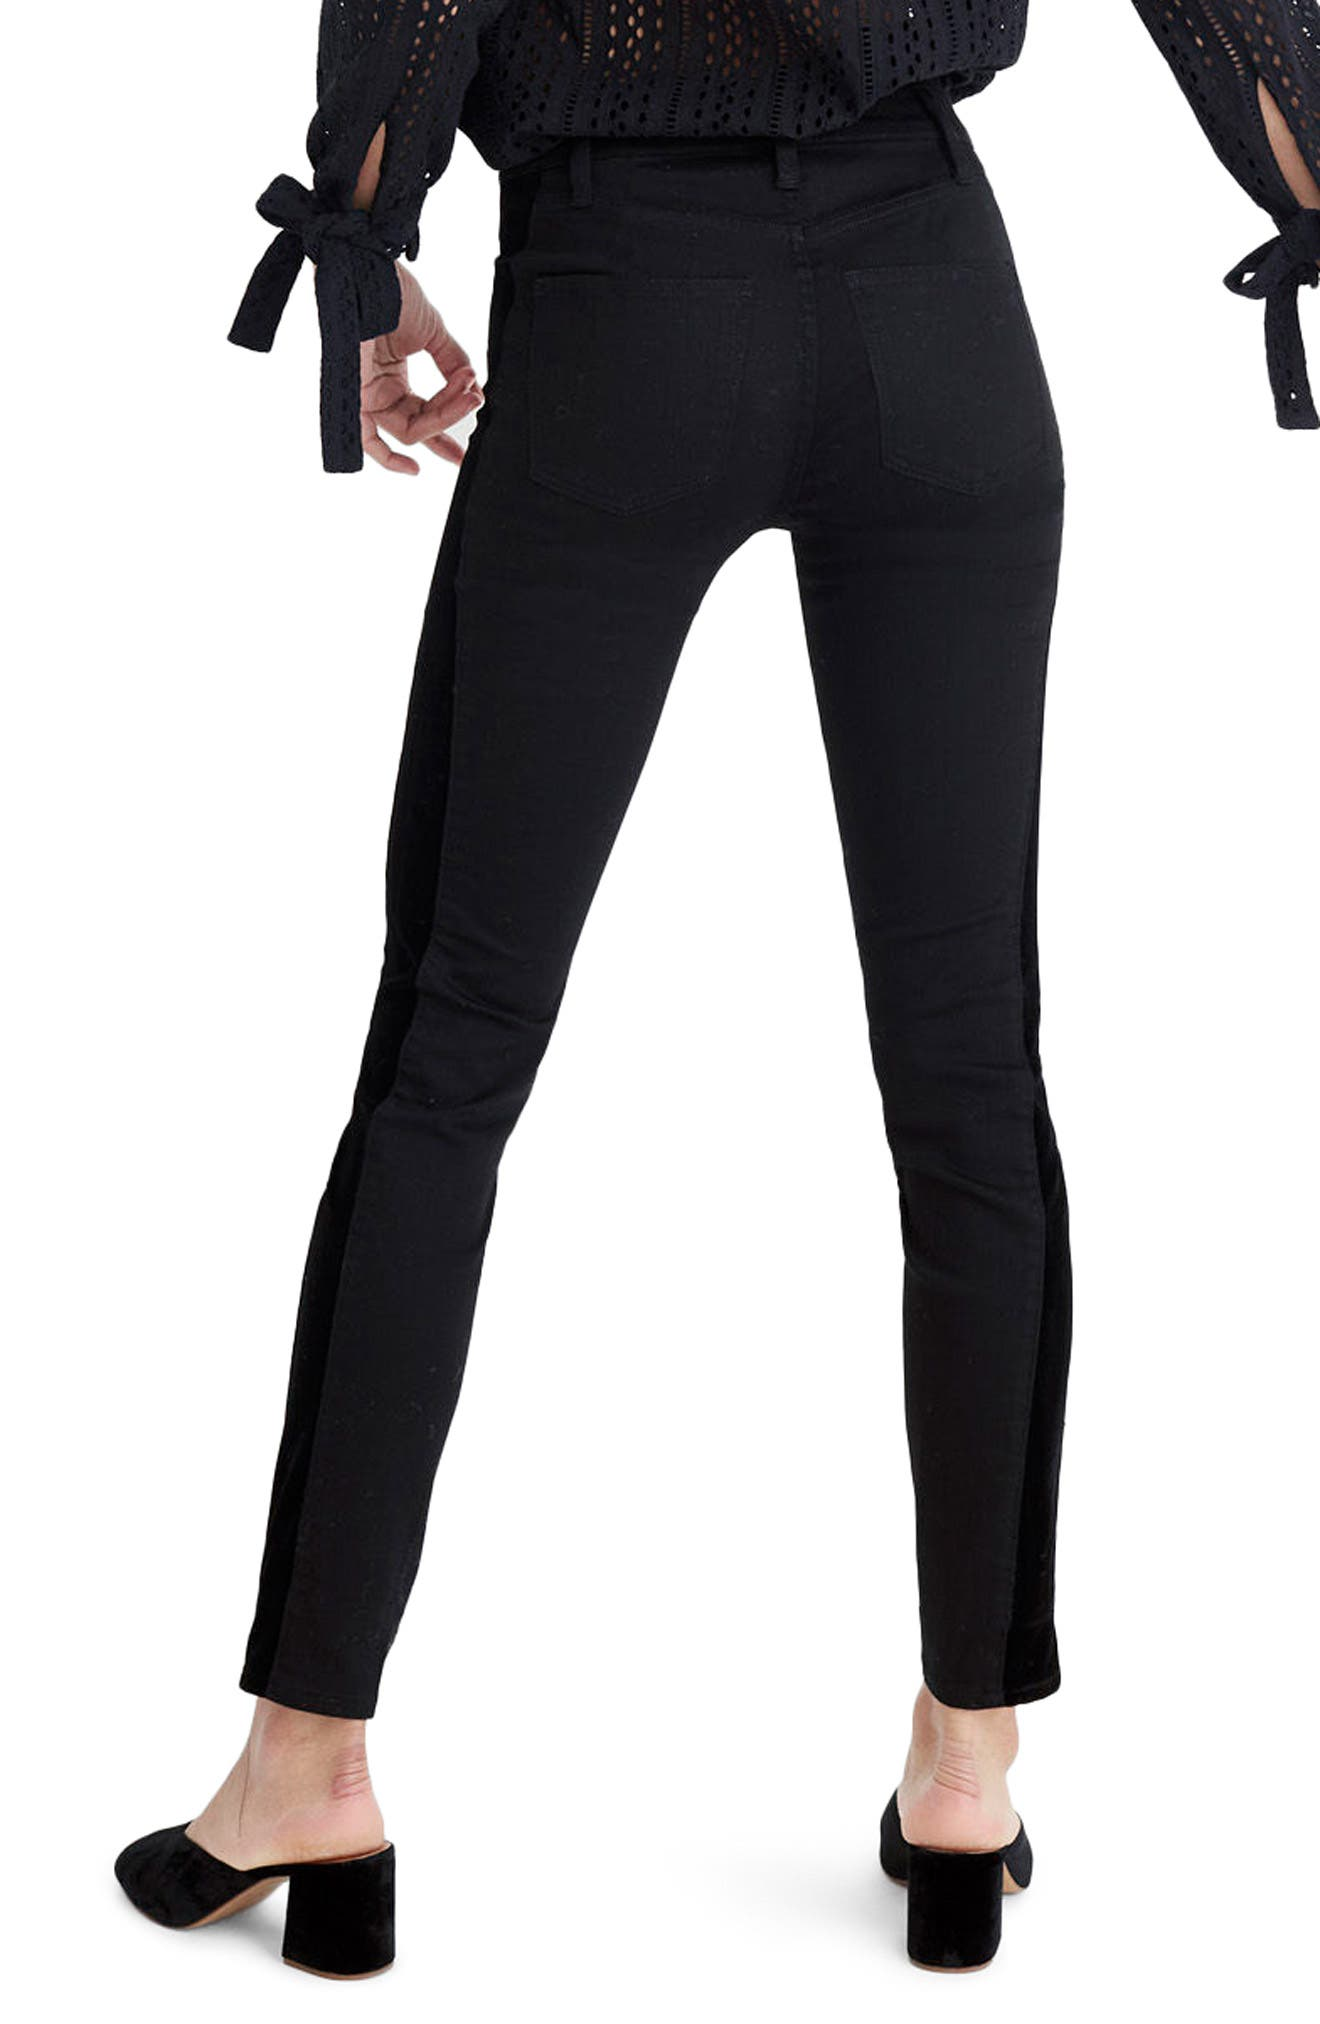 9-Inch High Waist Tuxedo Stripe Skinny Jeans,                             Alternate thumbnail 2, color,                             009